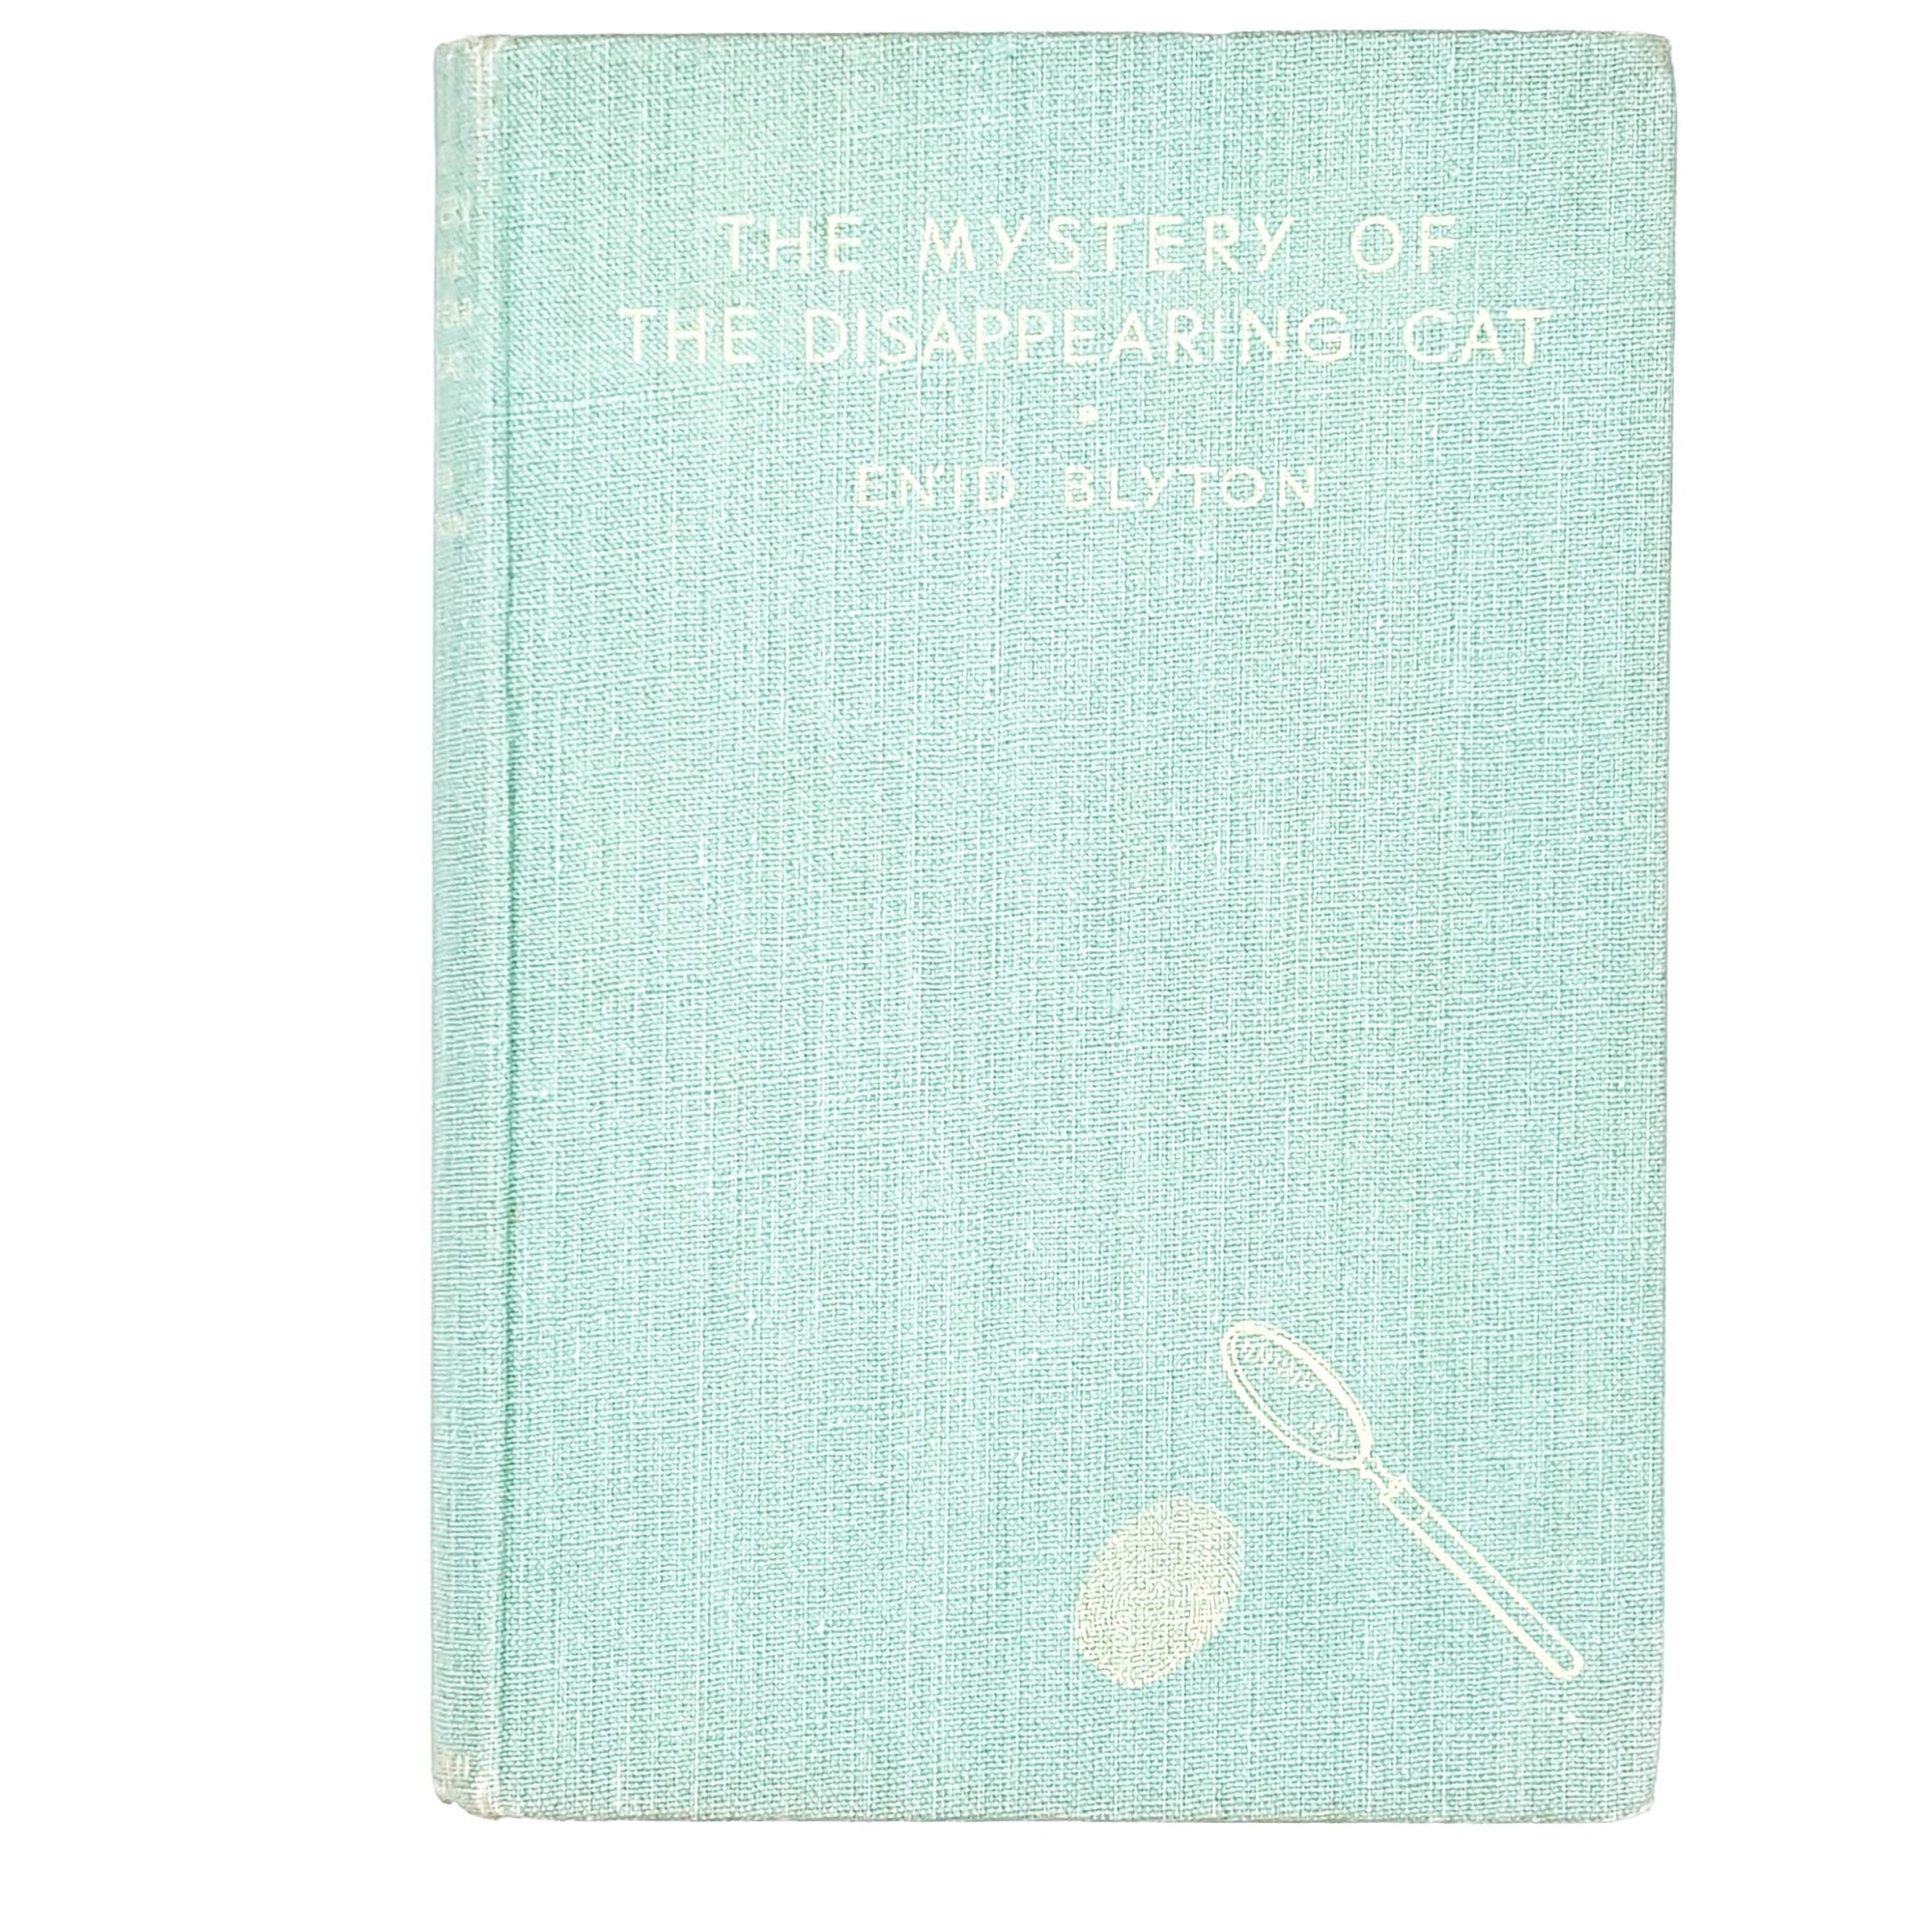 illustrated-enid-blyton-green-the-mystery-of-the-disappearing-cat-1944-country-house-library